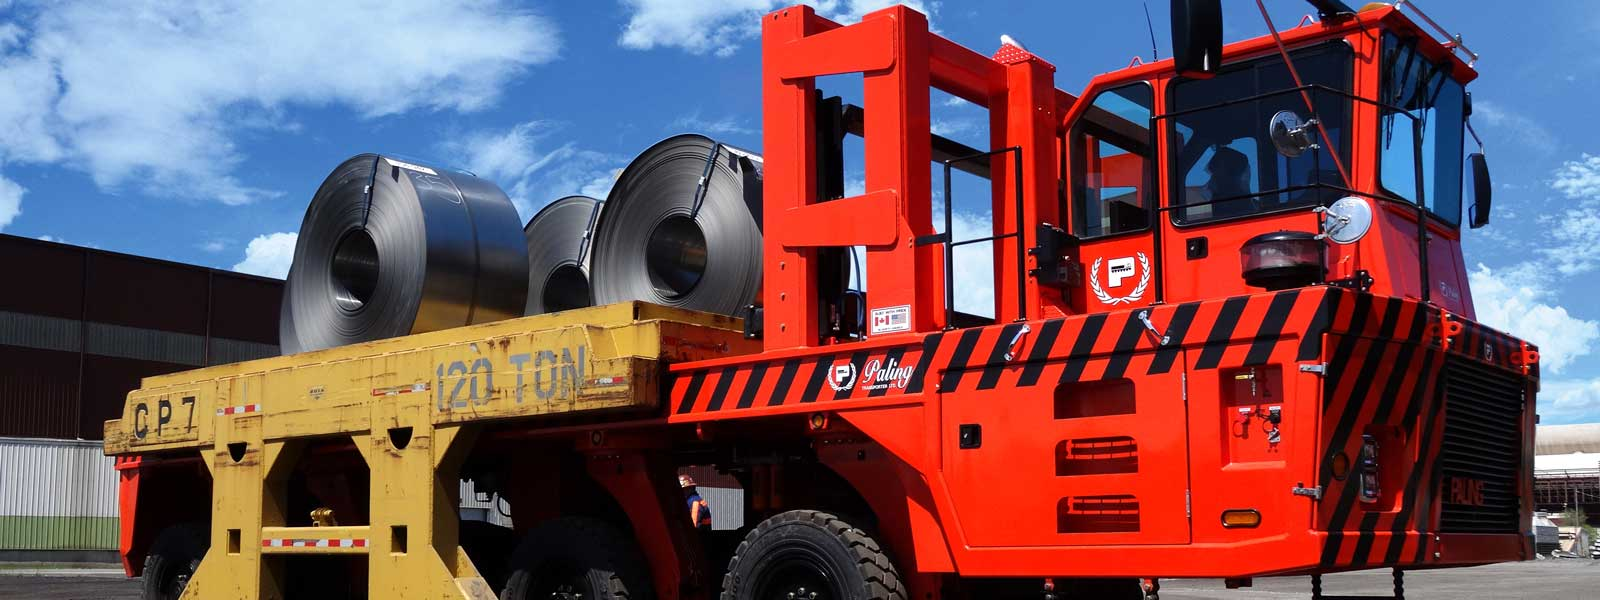 Bright Red Transporter Also Known As Continuous Transport System